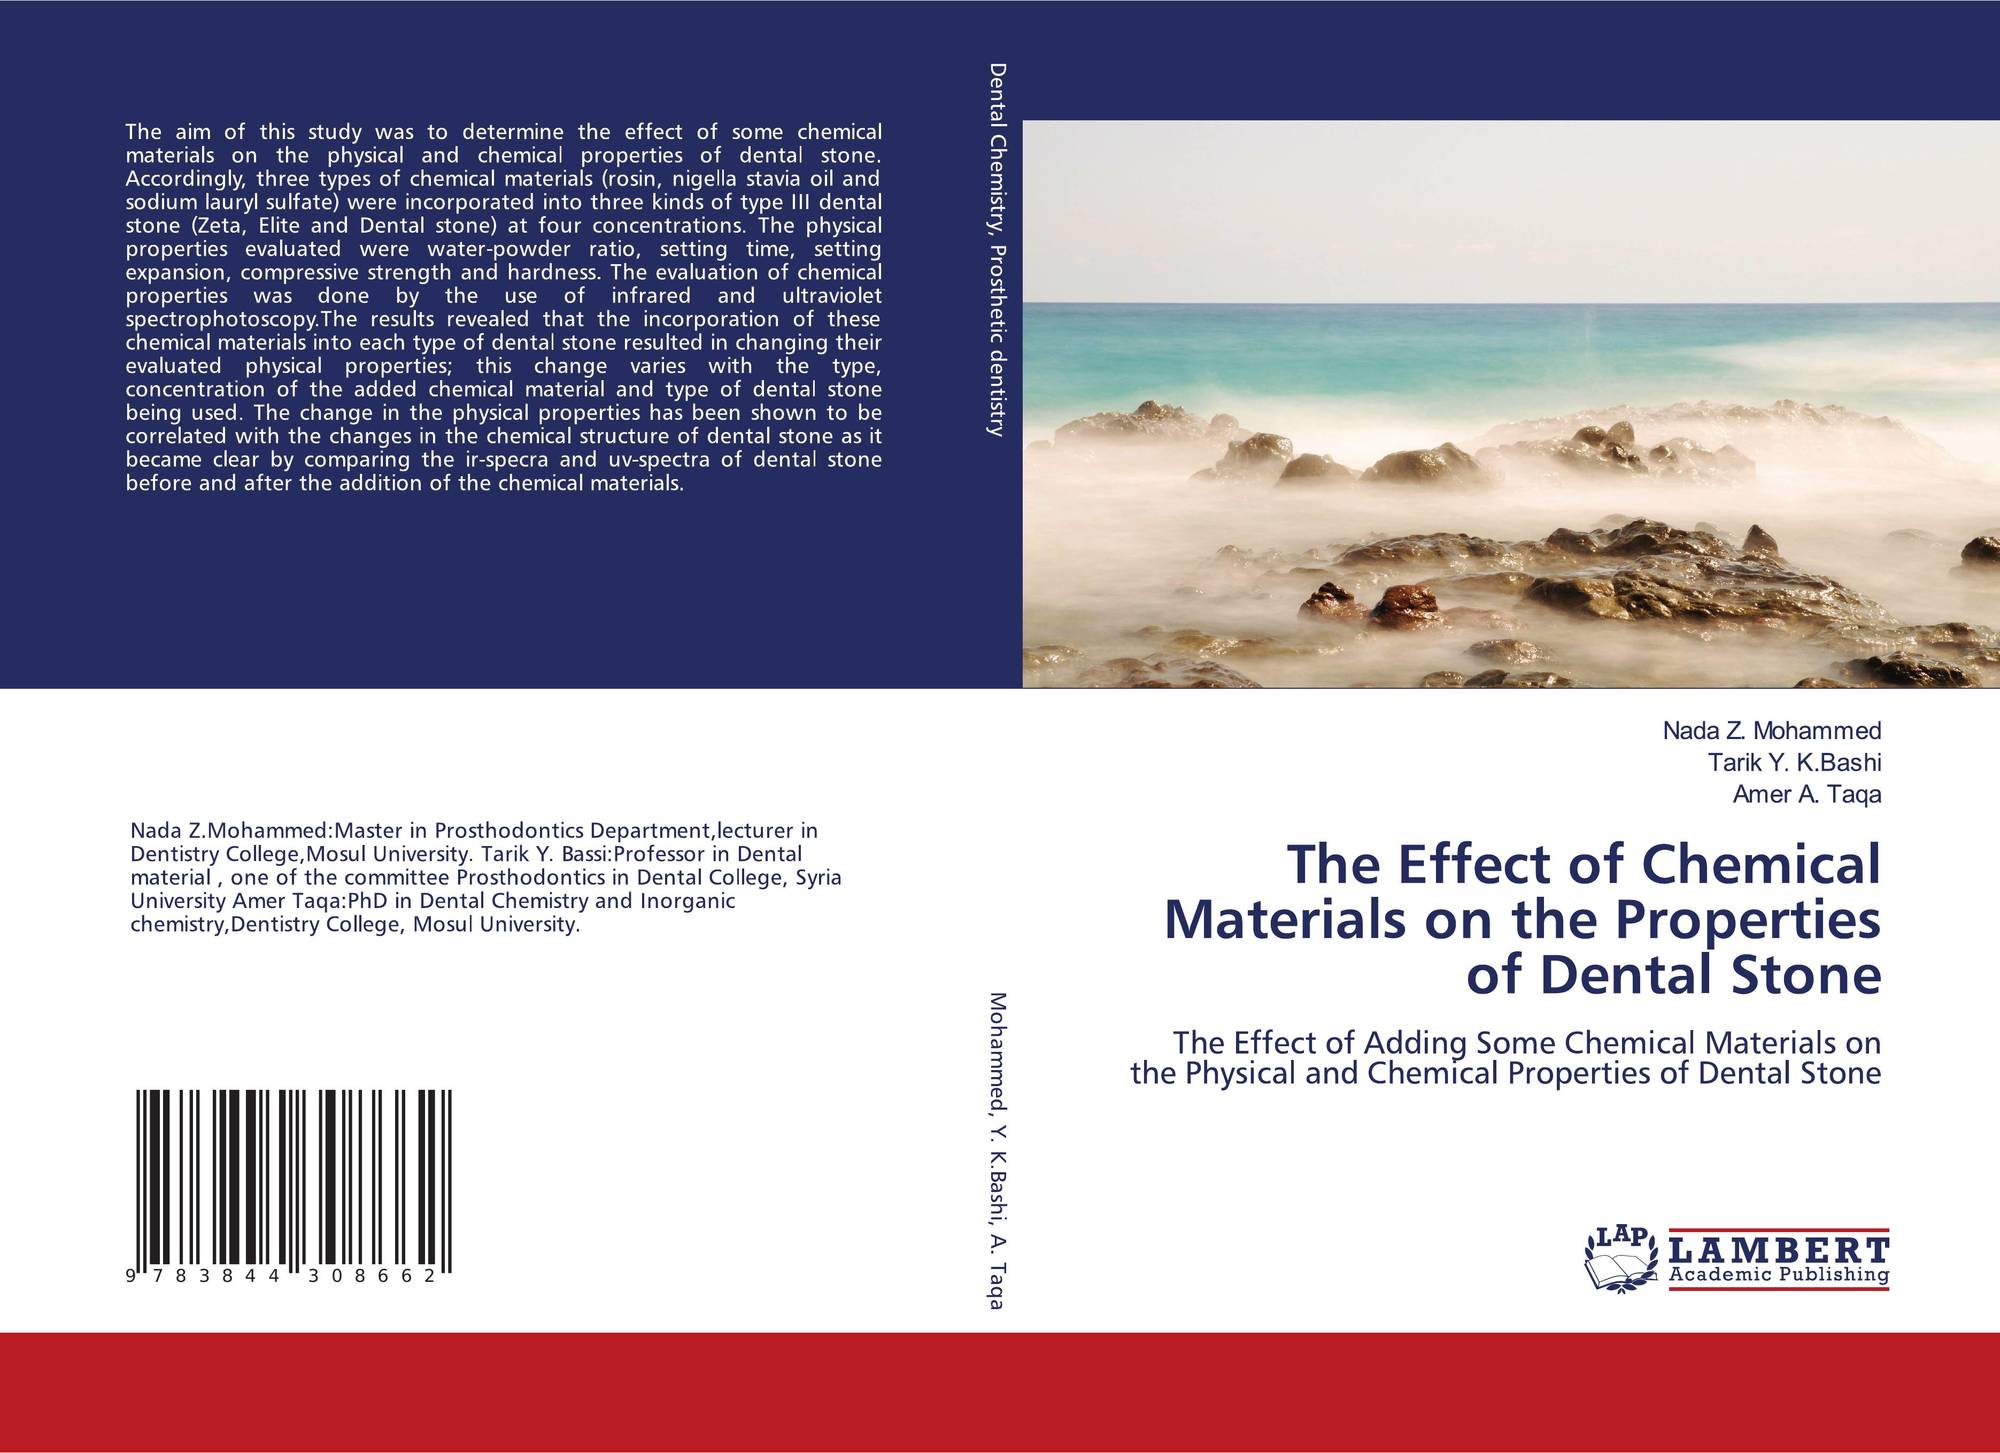 The Effect of Chemical Materials on the Properties of Dental